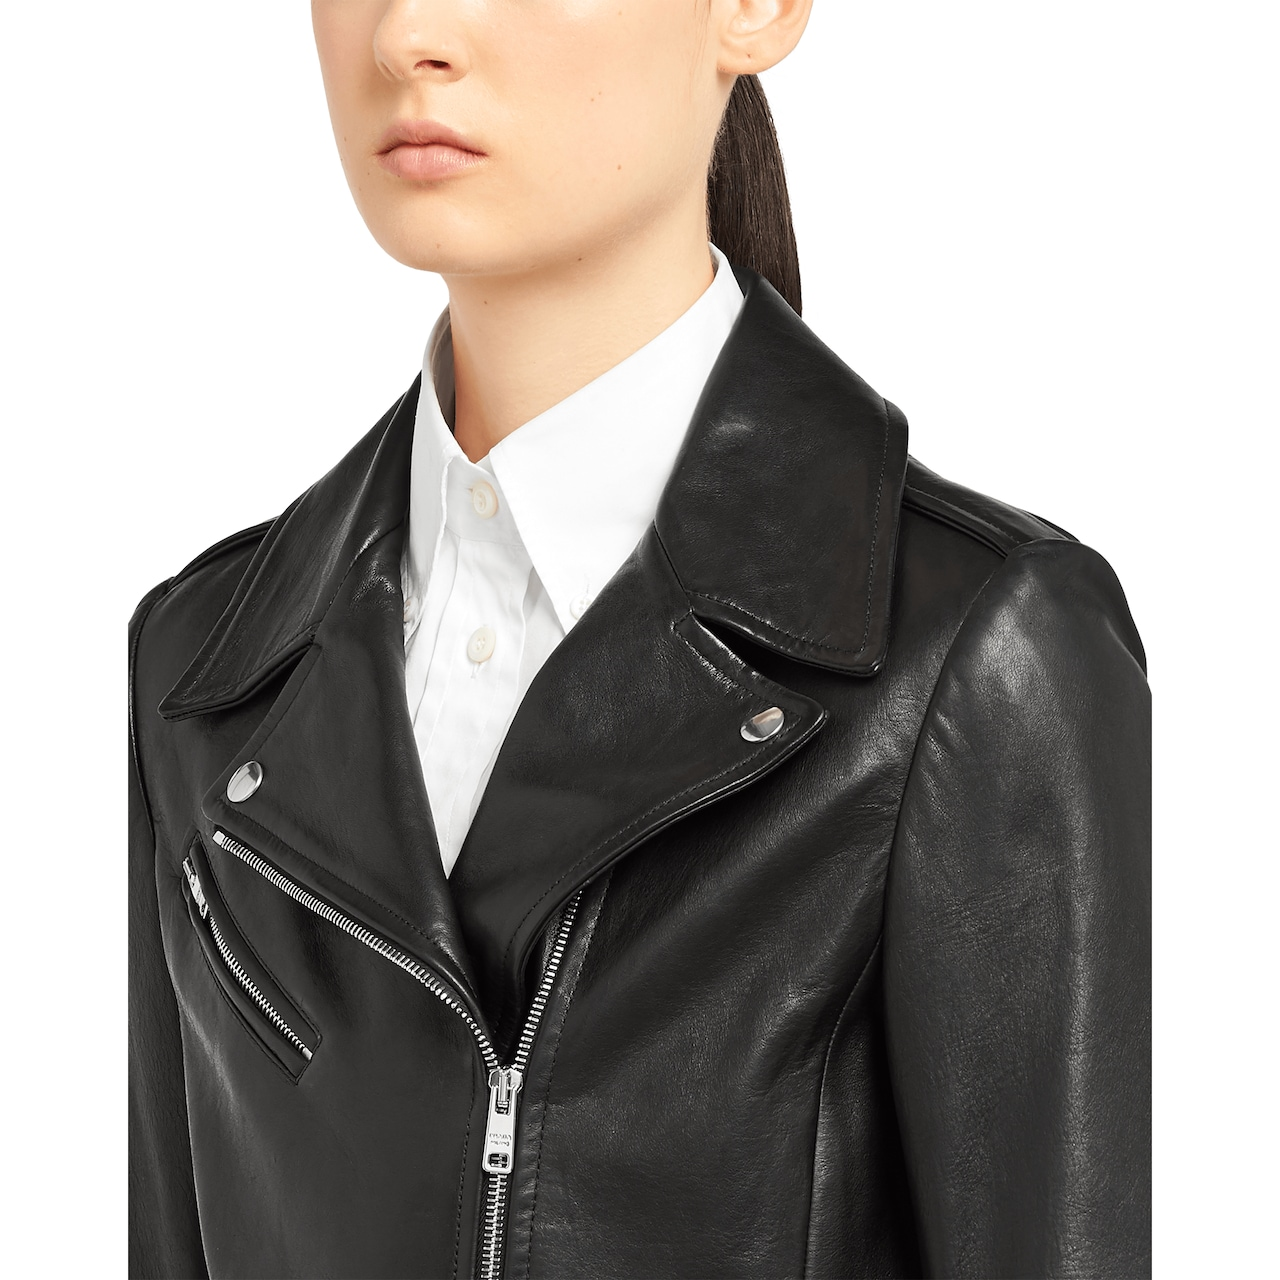 Prada Nappa leather biker jacket 5